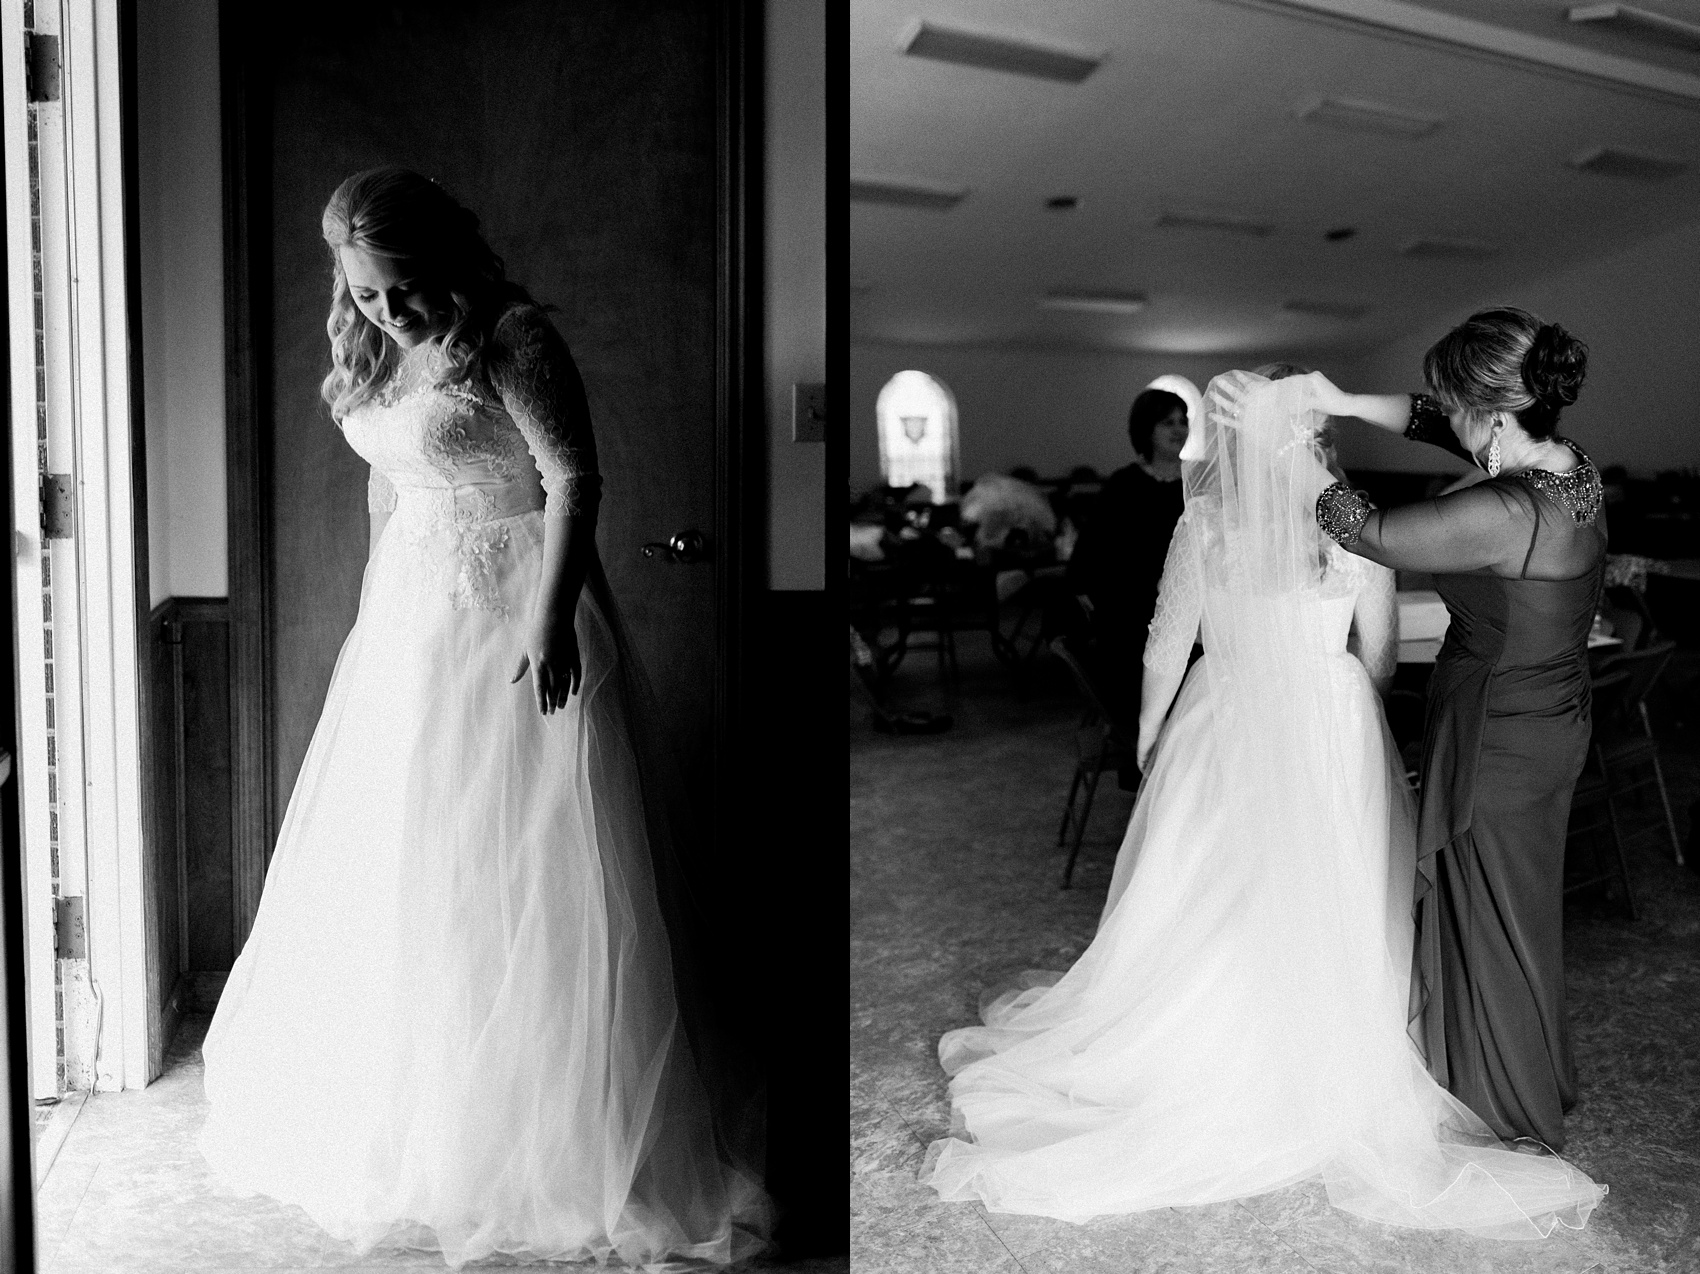 aiken_wedding_photographer_5032.jpg